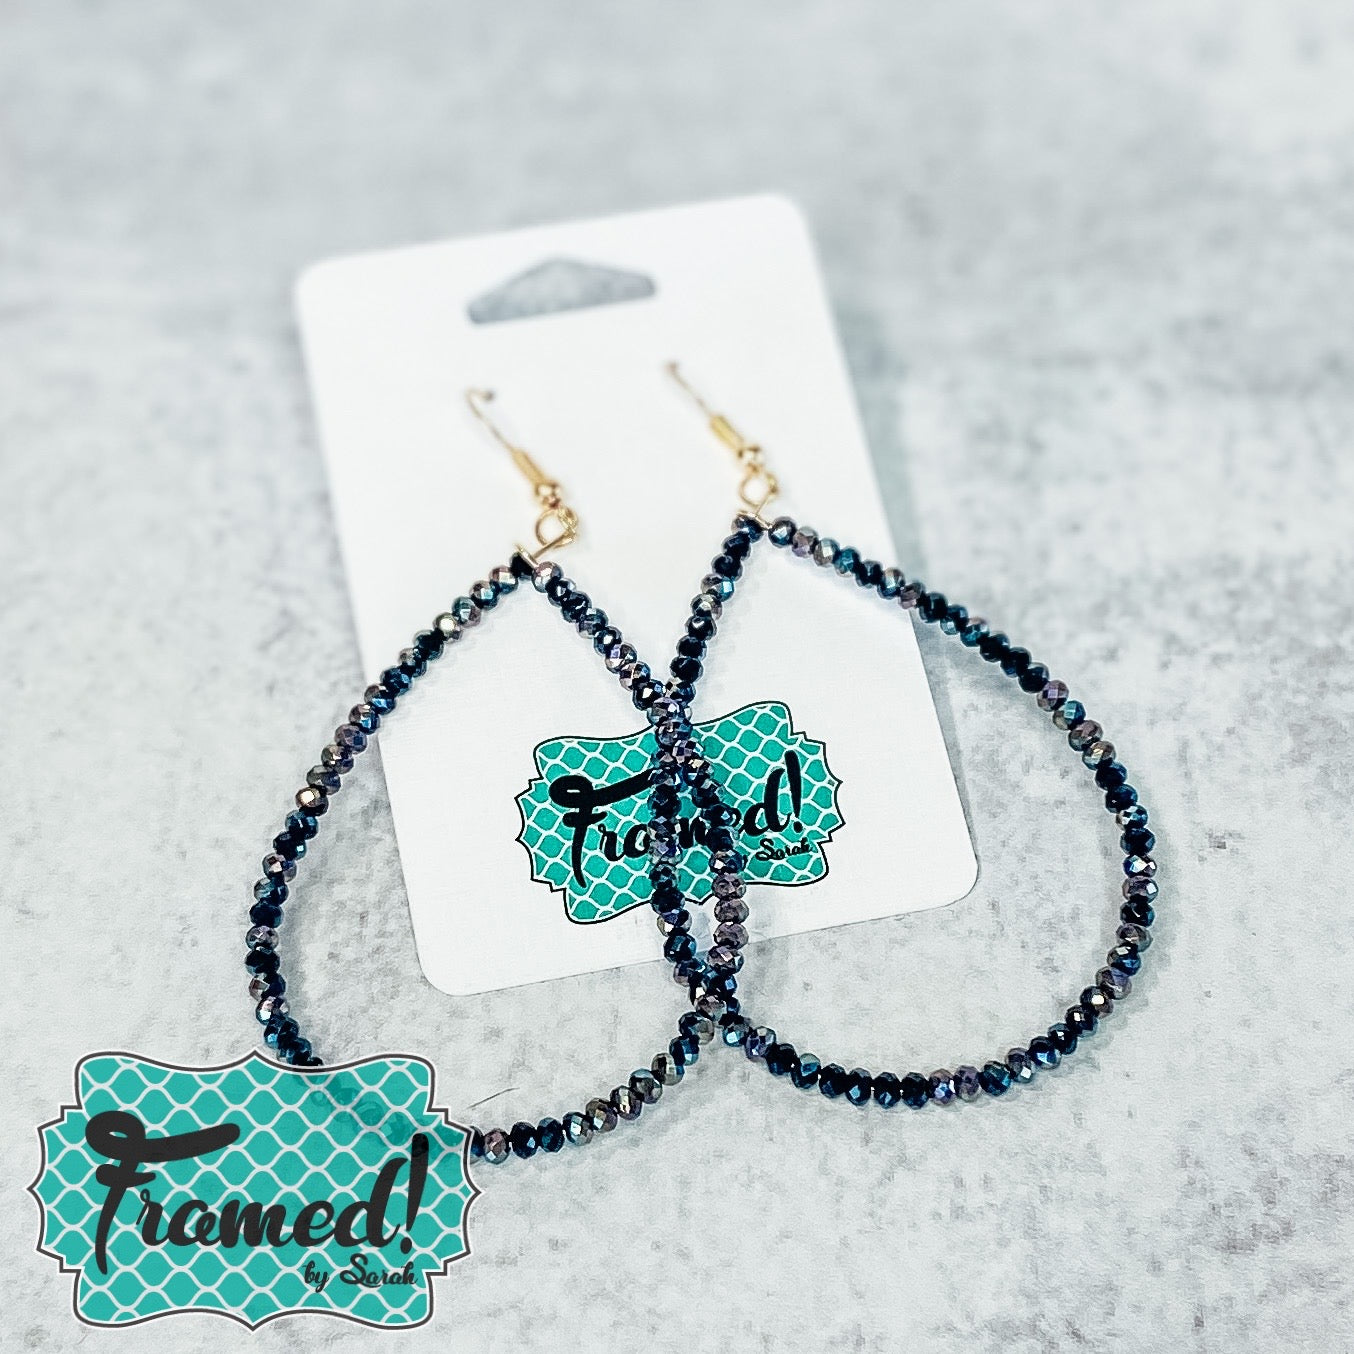 Black Sparkly Drop Earrings